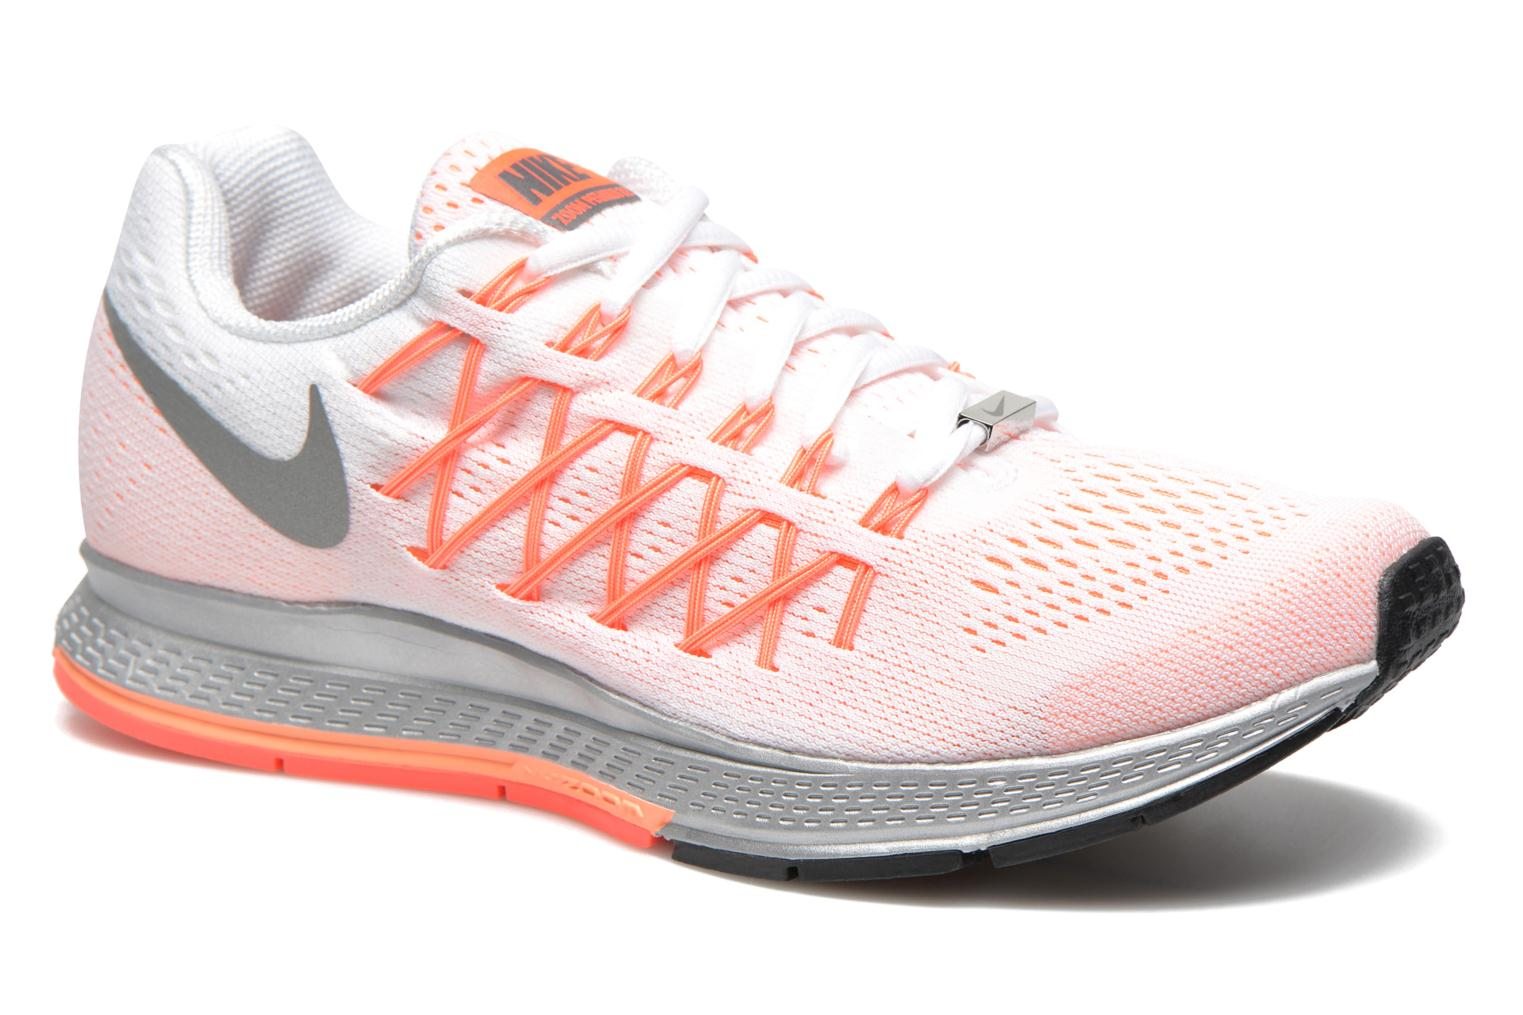 half off 9c882 35ad9 ... where to buy chaussures de sport nike w nike air zoom pegasus 32 nwm  blanc vue